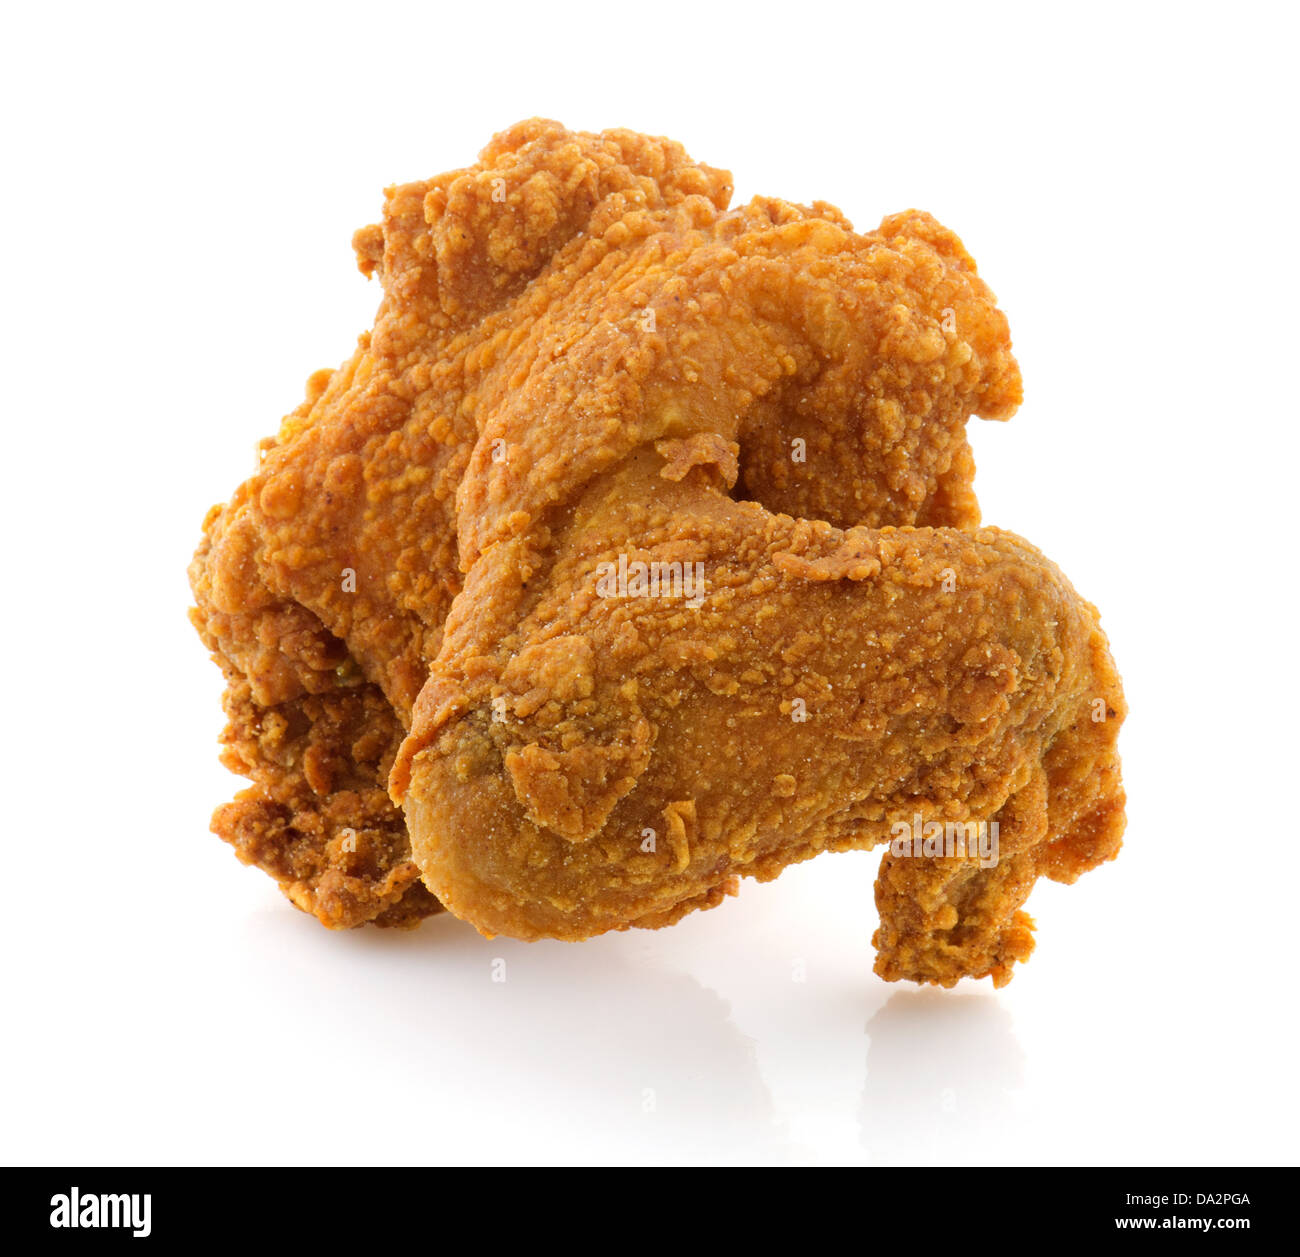 Fried chicken wing isolated on white background. - Stock Image